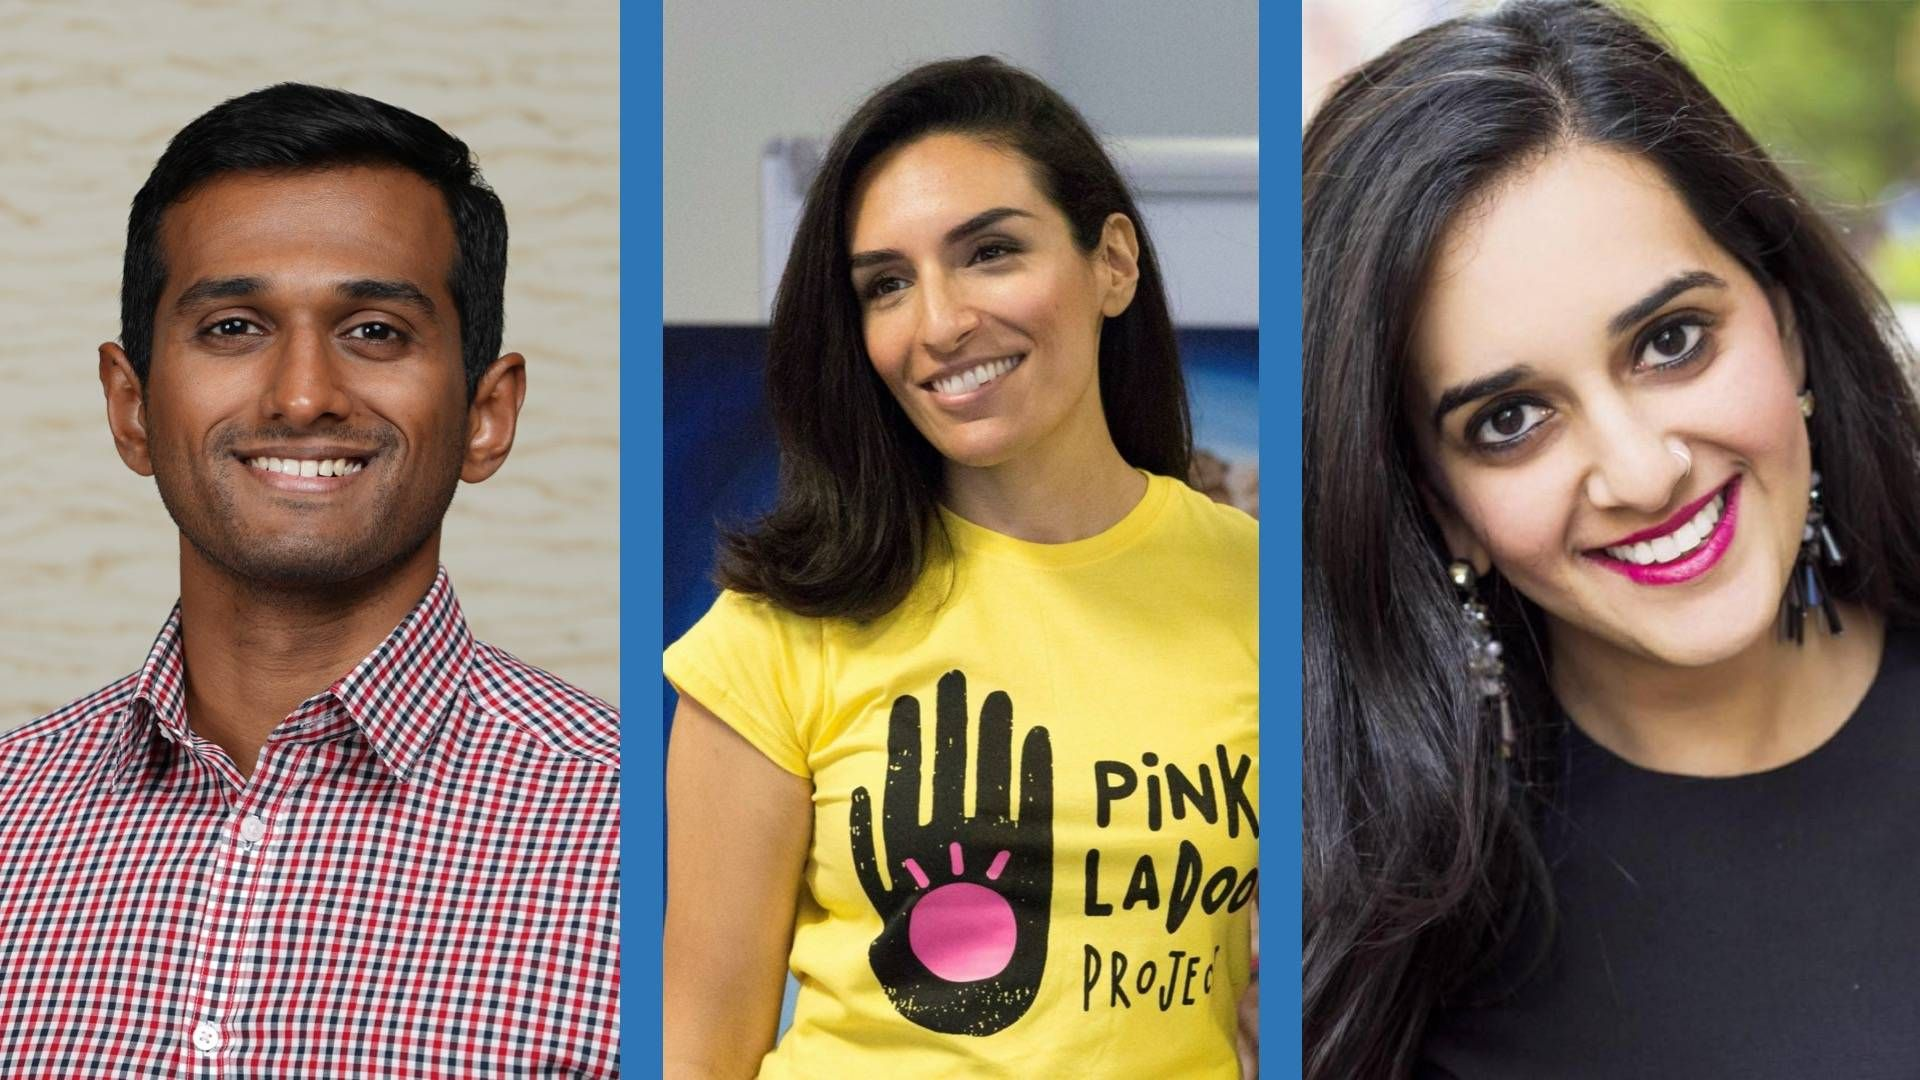 Three portraits of a man and two women of South Asian descent